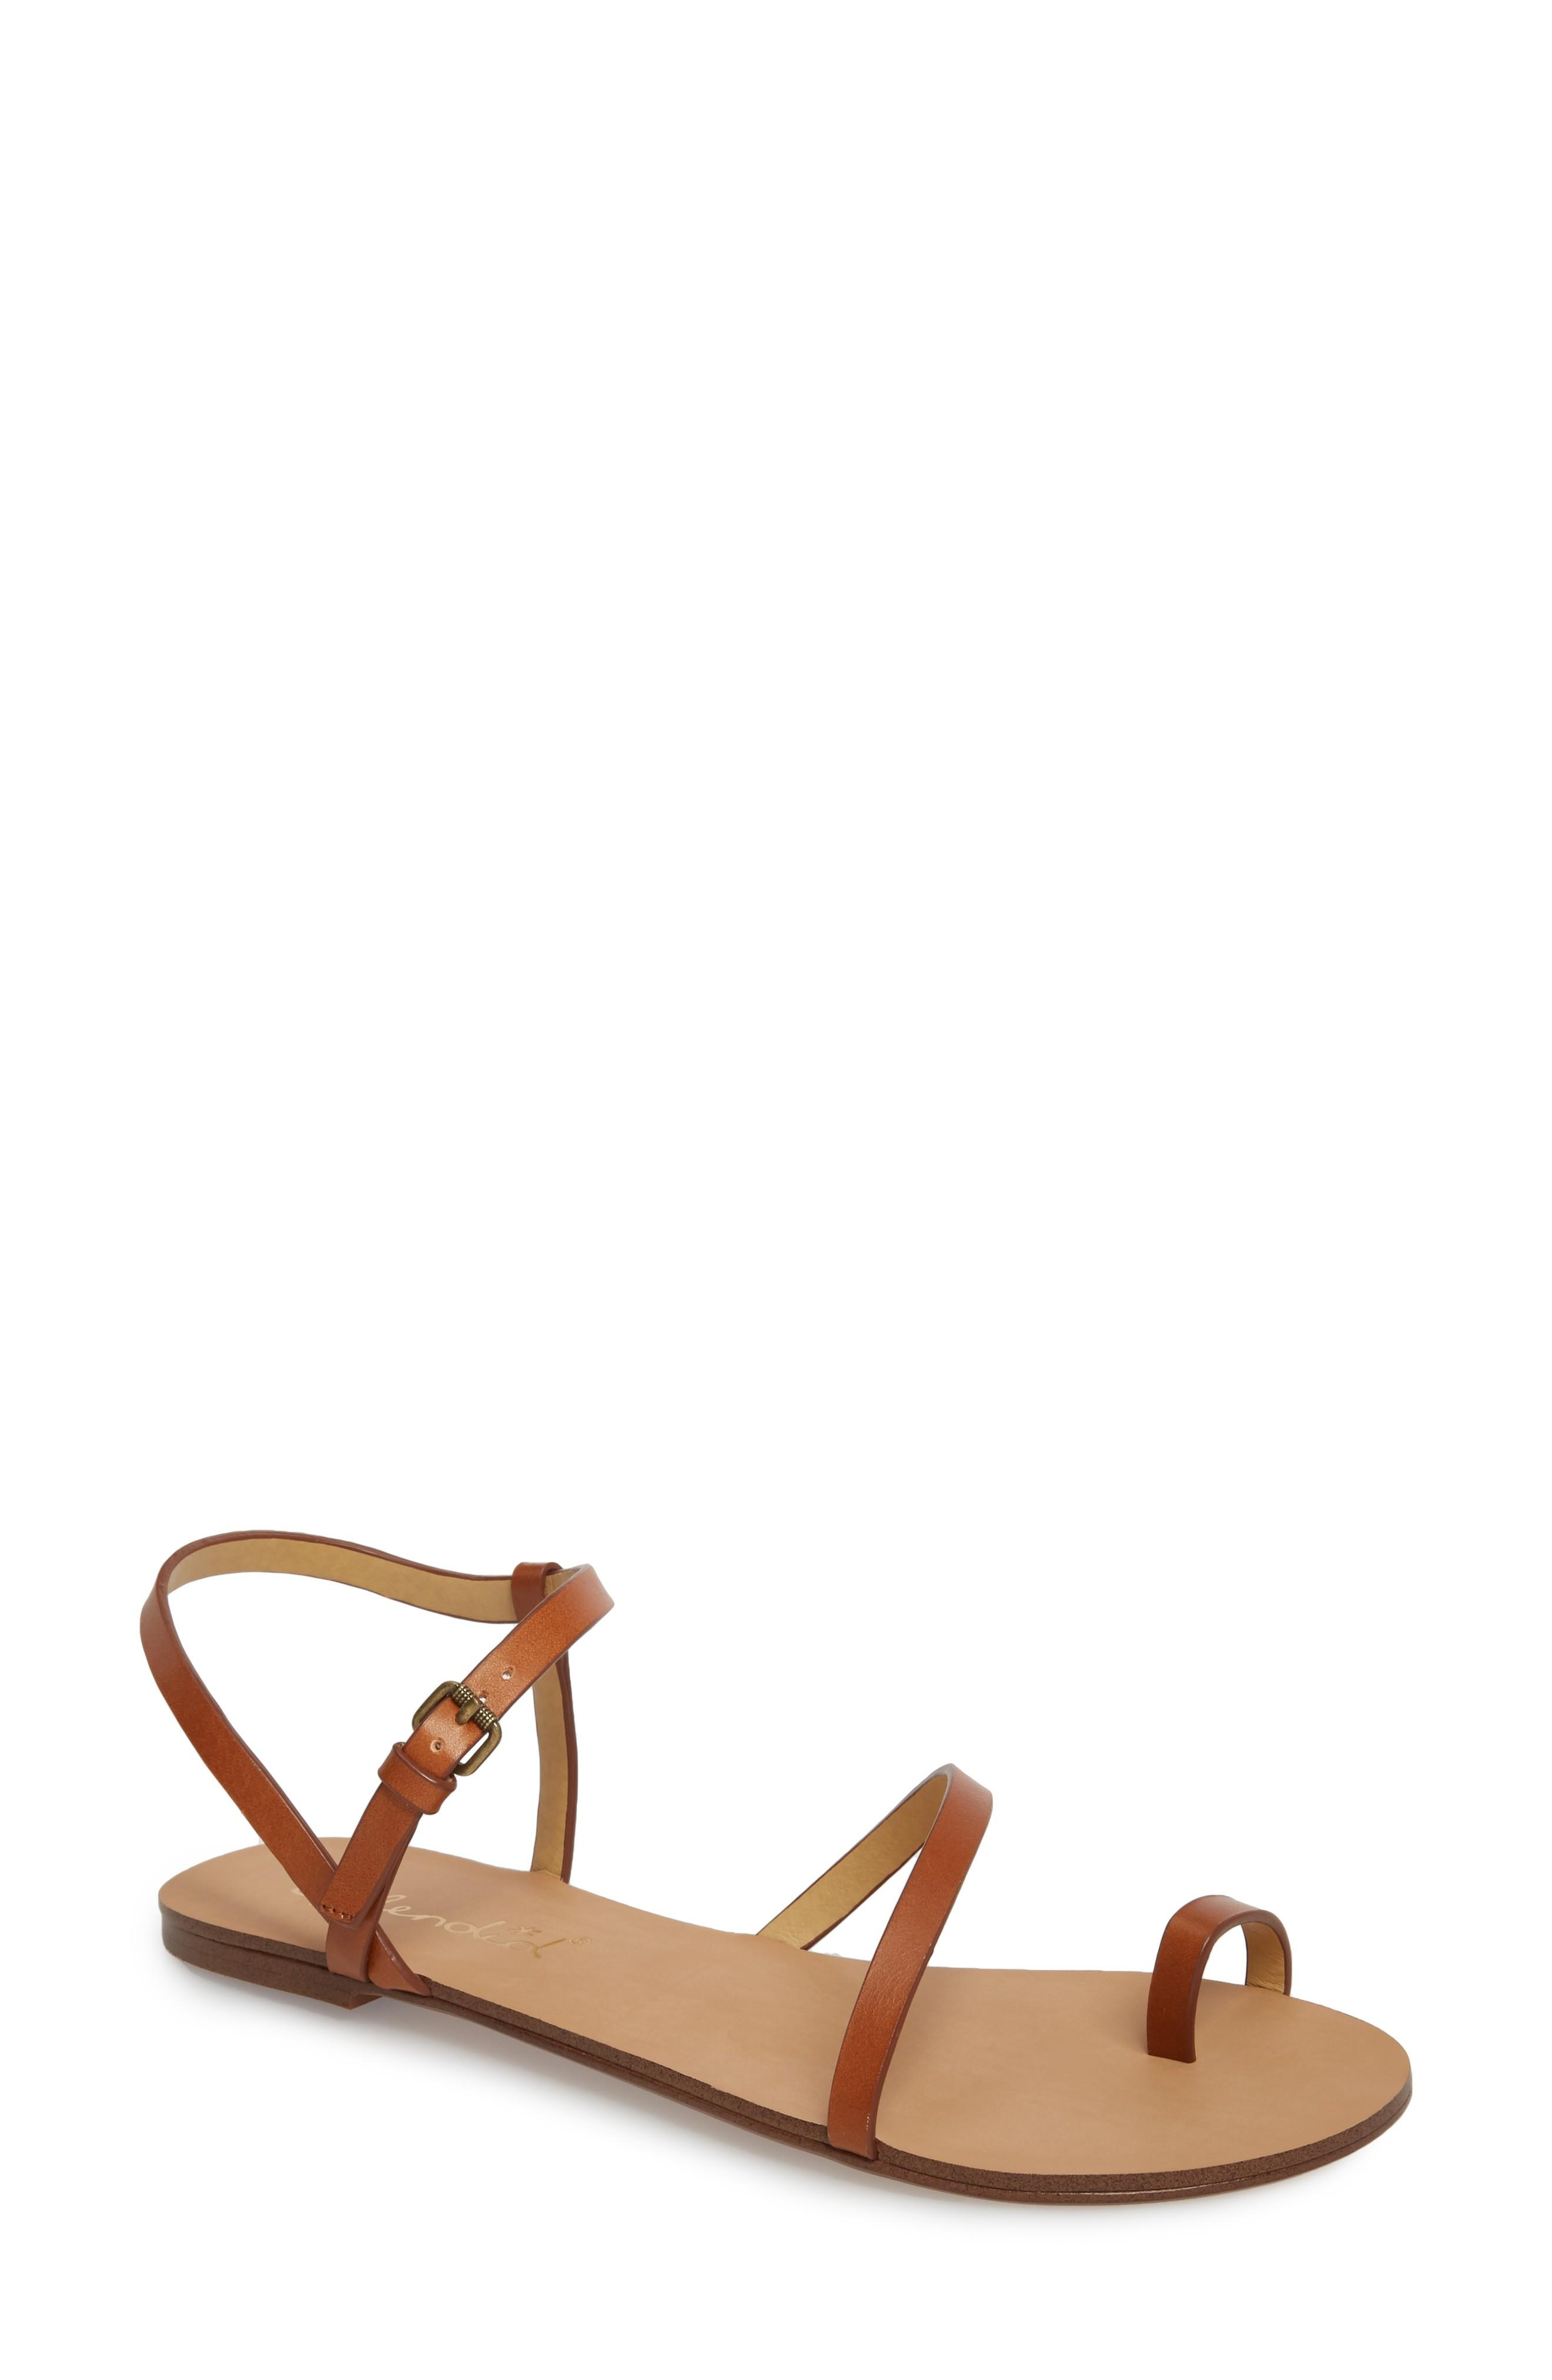 Splendid Flower Sandal In Cognac Leather